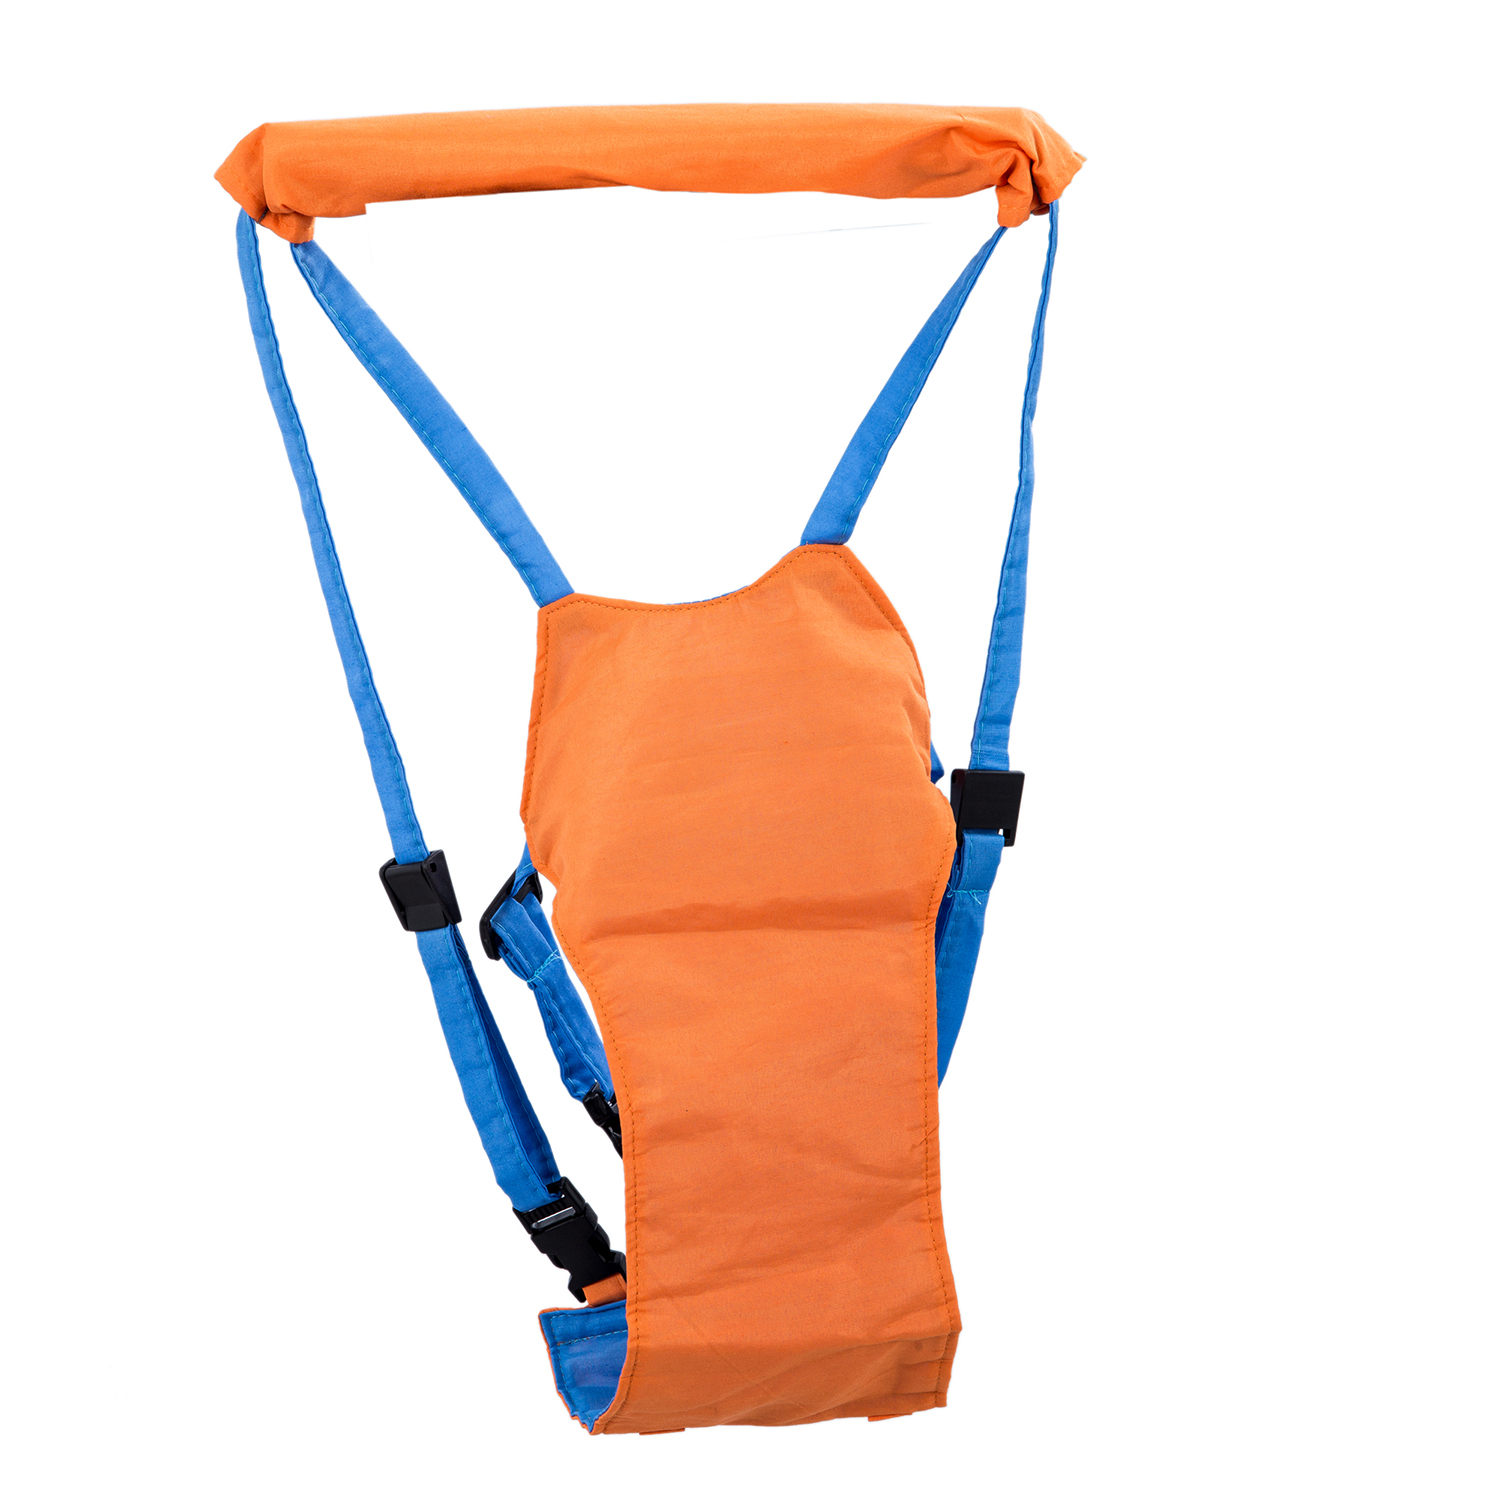 Adjustable Baby Toddler Walking Assistant Safety Harness